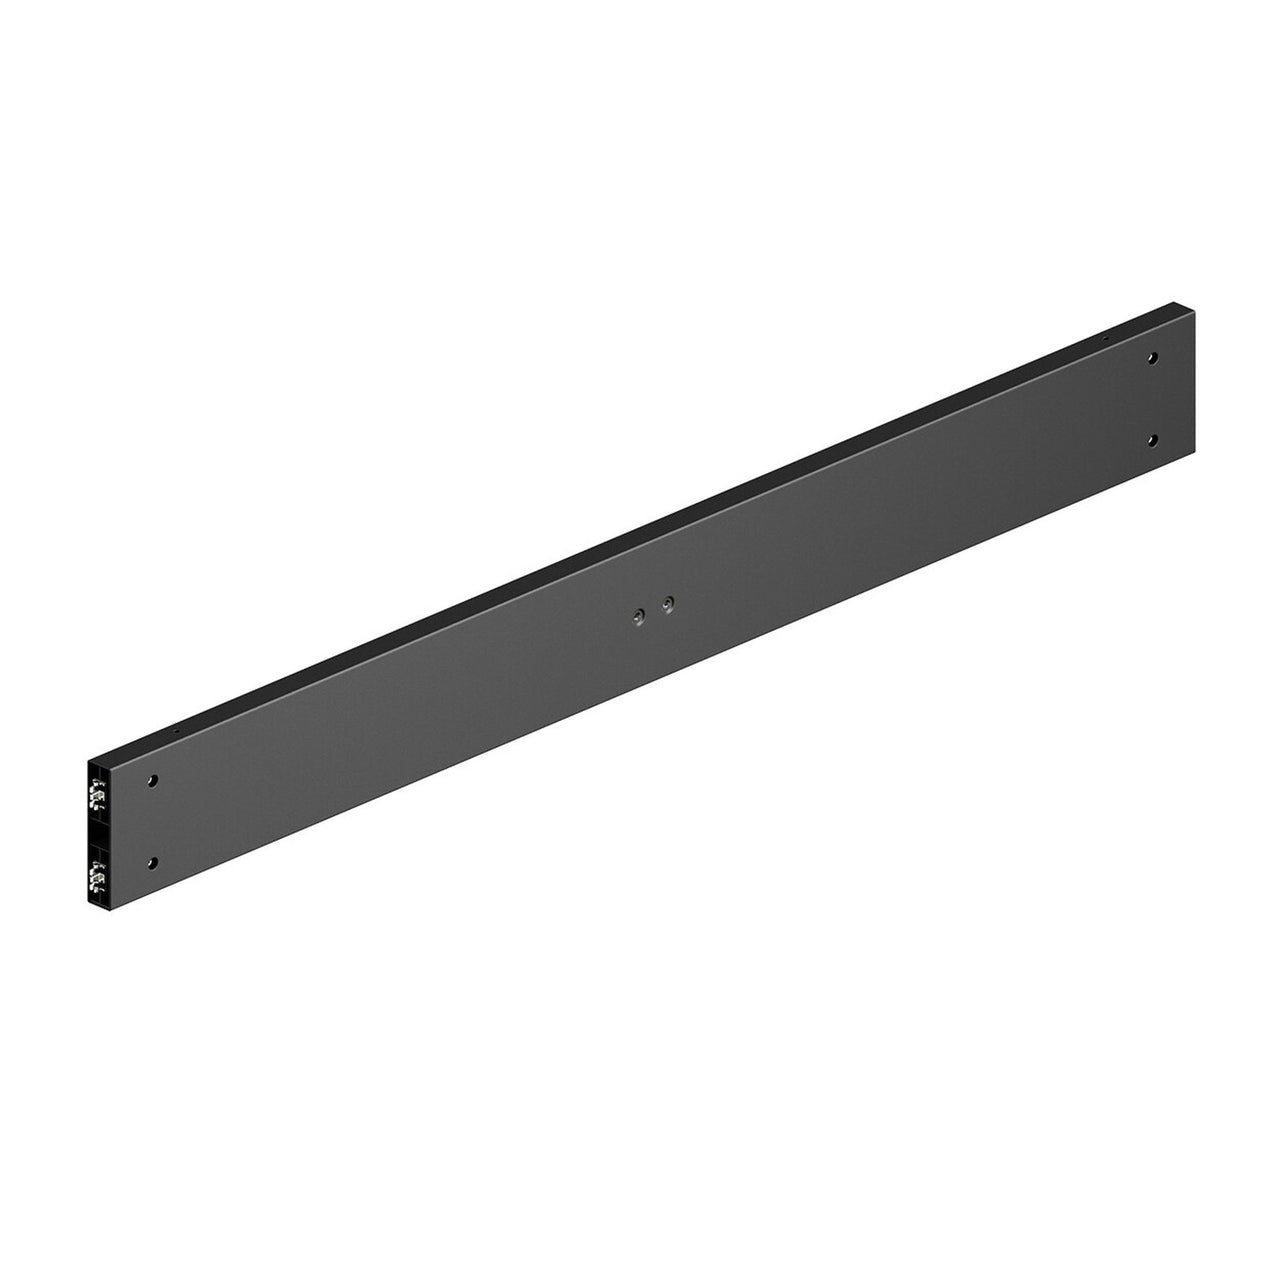 MAXe Base Joining Rail to fit 1200 mm bay  1168 W x 120 H x 25.4 mm D